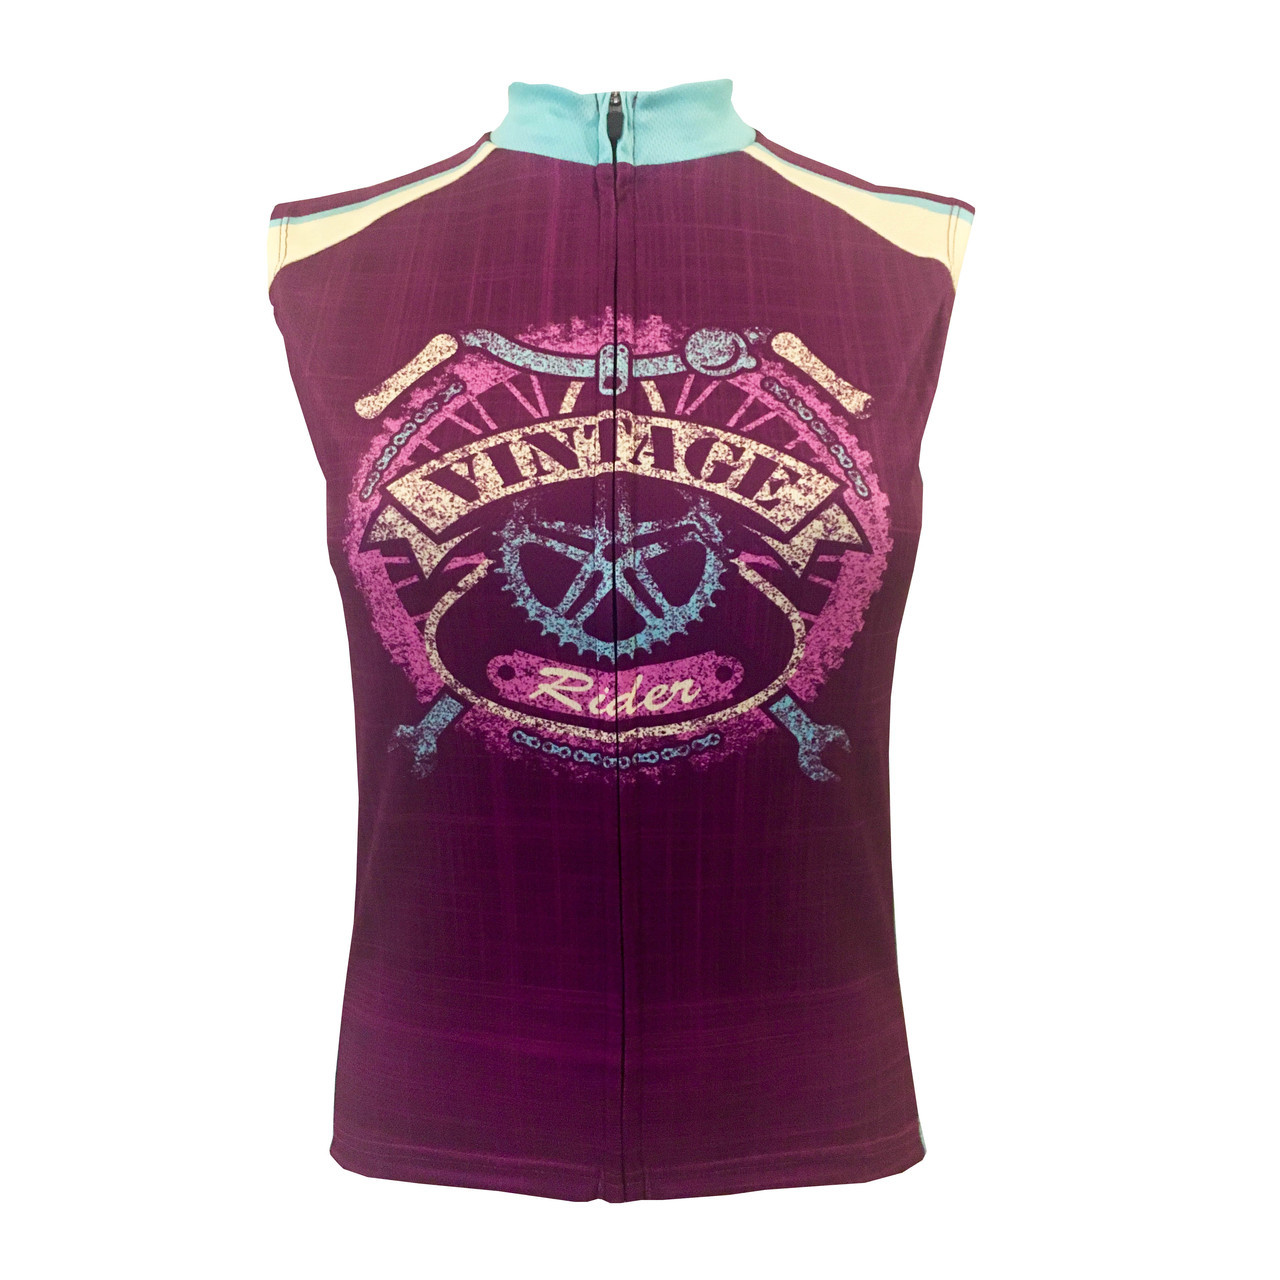 a3c1053cd0df1 VINTAGE RIDER WOMEN S SLEEVELESS CYCLING JERSEY. Your Price   39.99 (You  save  20.00). Image 1. Larger   More Photos